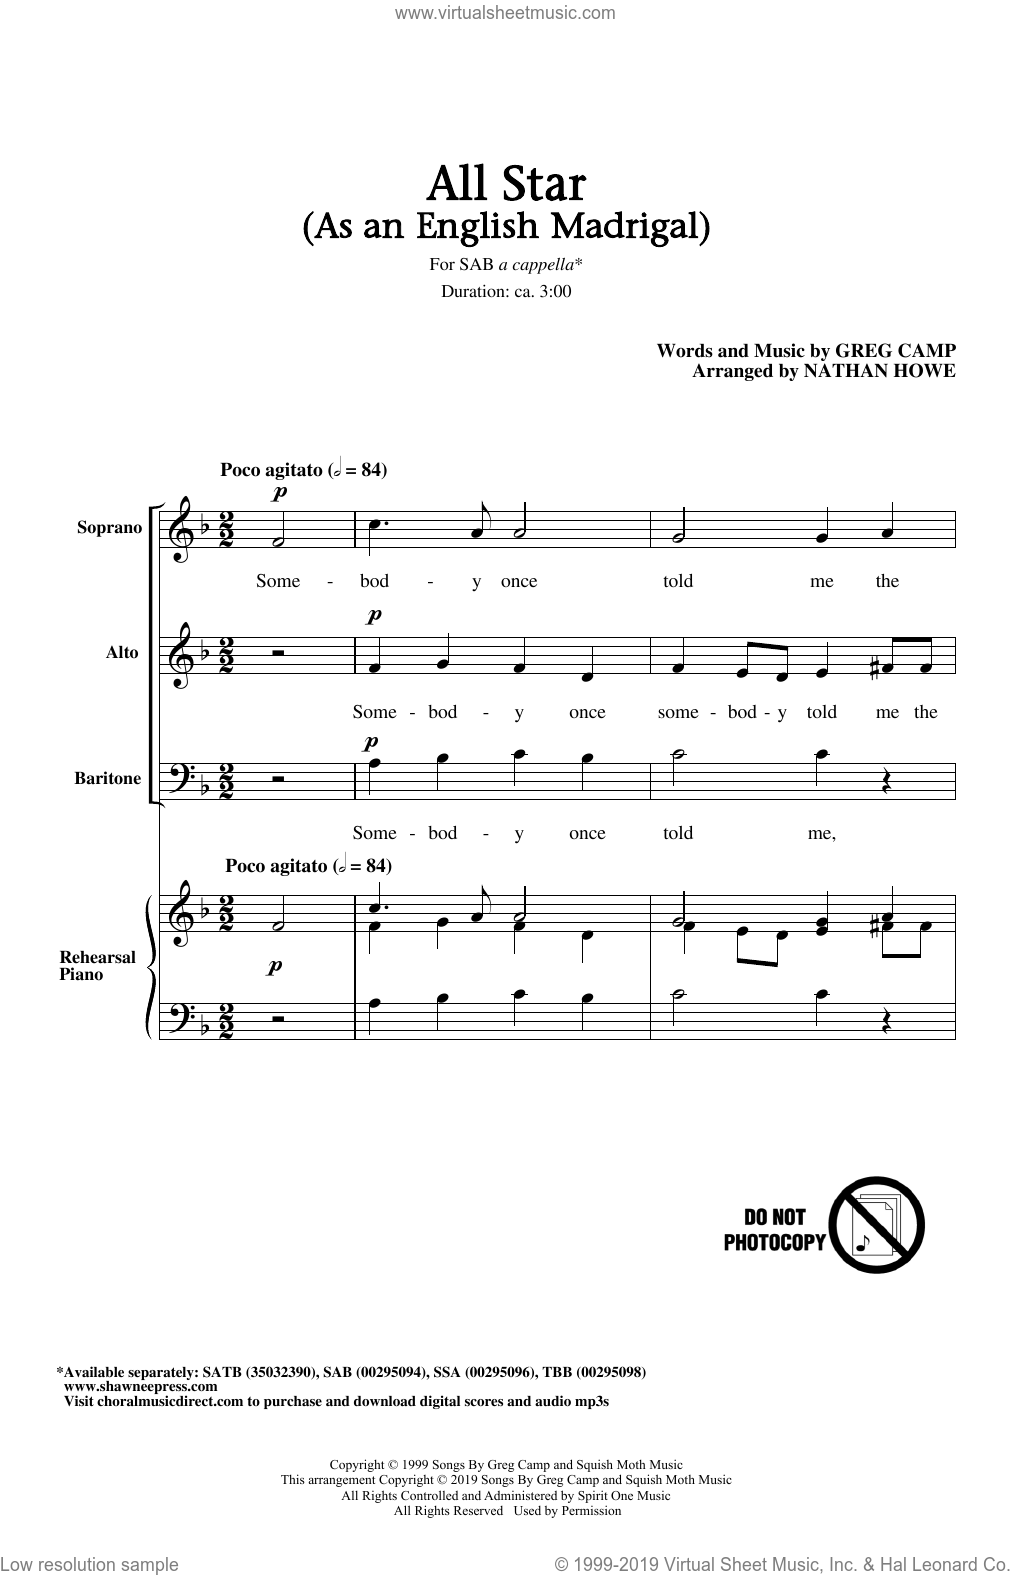 All Star (As an English Madrigal) (arr. Nathan Howe) sheet music for choir (SAB: soprano, alto, bass) by Smash Mouth, Nathan Howe and Greg Camp, intermediate skill level